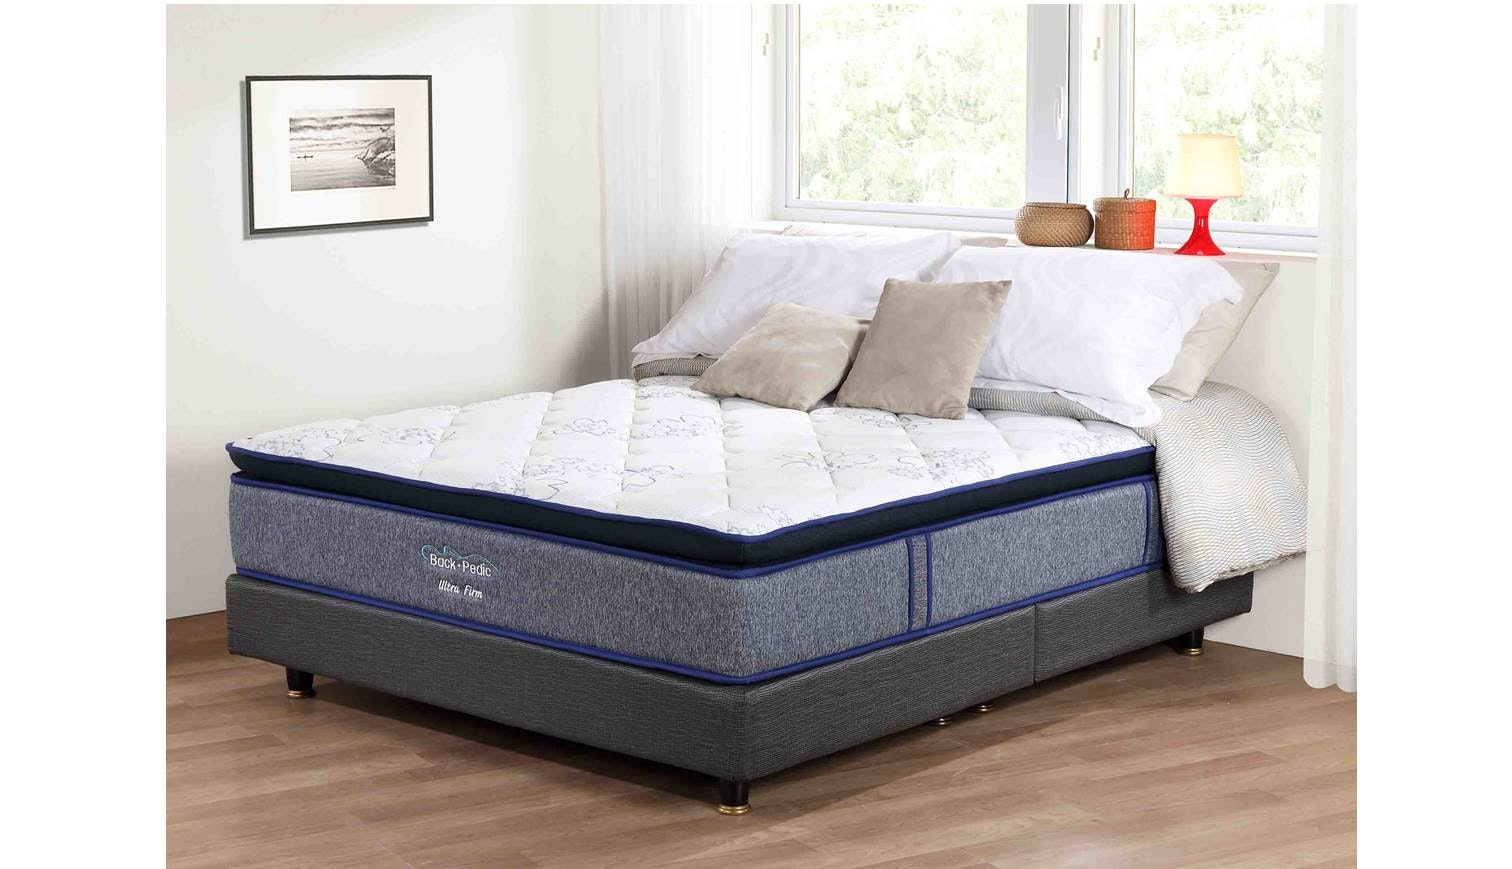 Backpedic Ultra Firm Queen Size Pocketed Spring Mattress Also